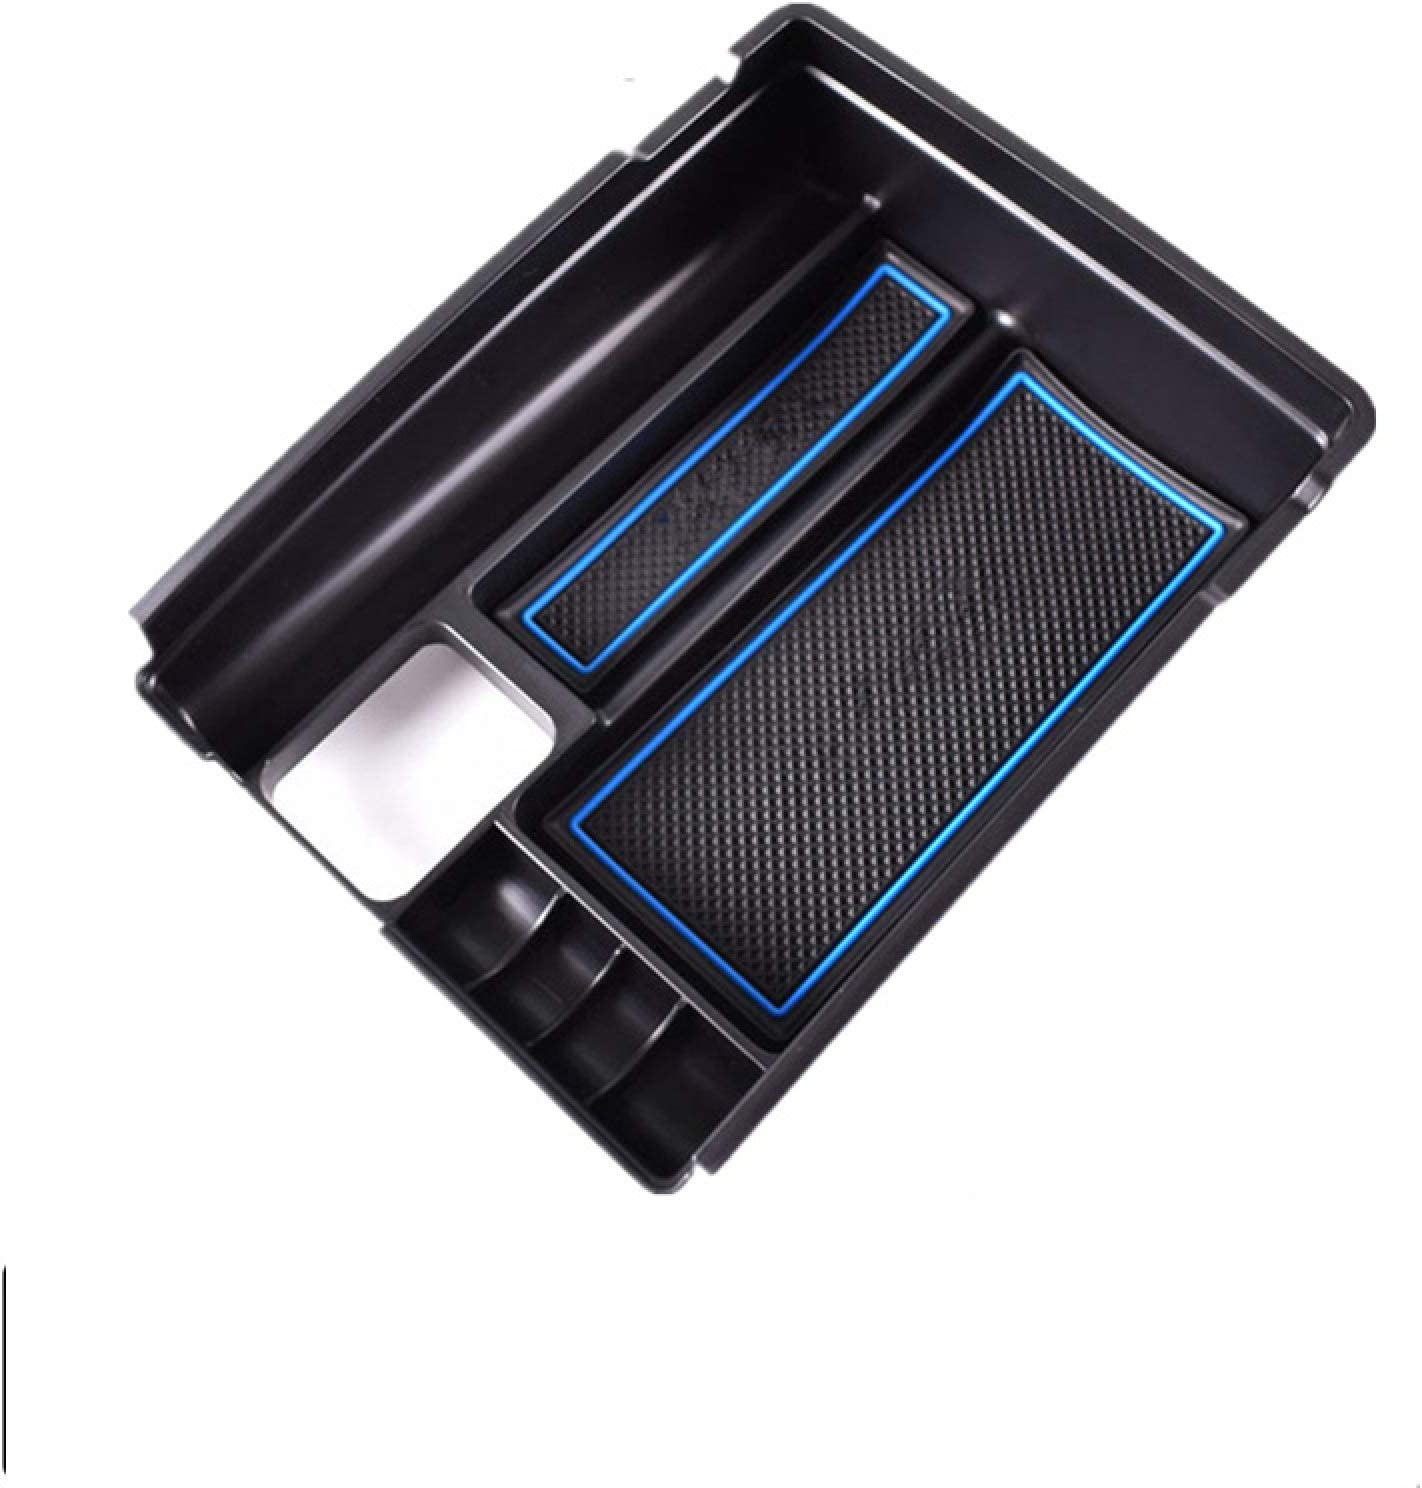 BYWWANG Car Central Excellence Armrest Storage Glove Auto Box Org Long Beach Mall Container